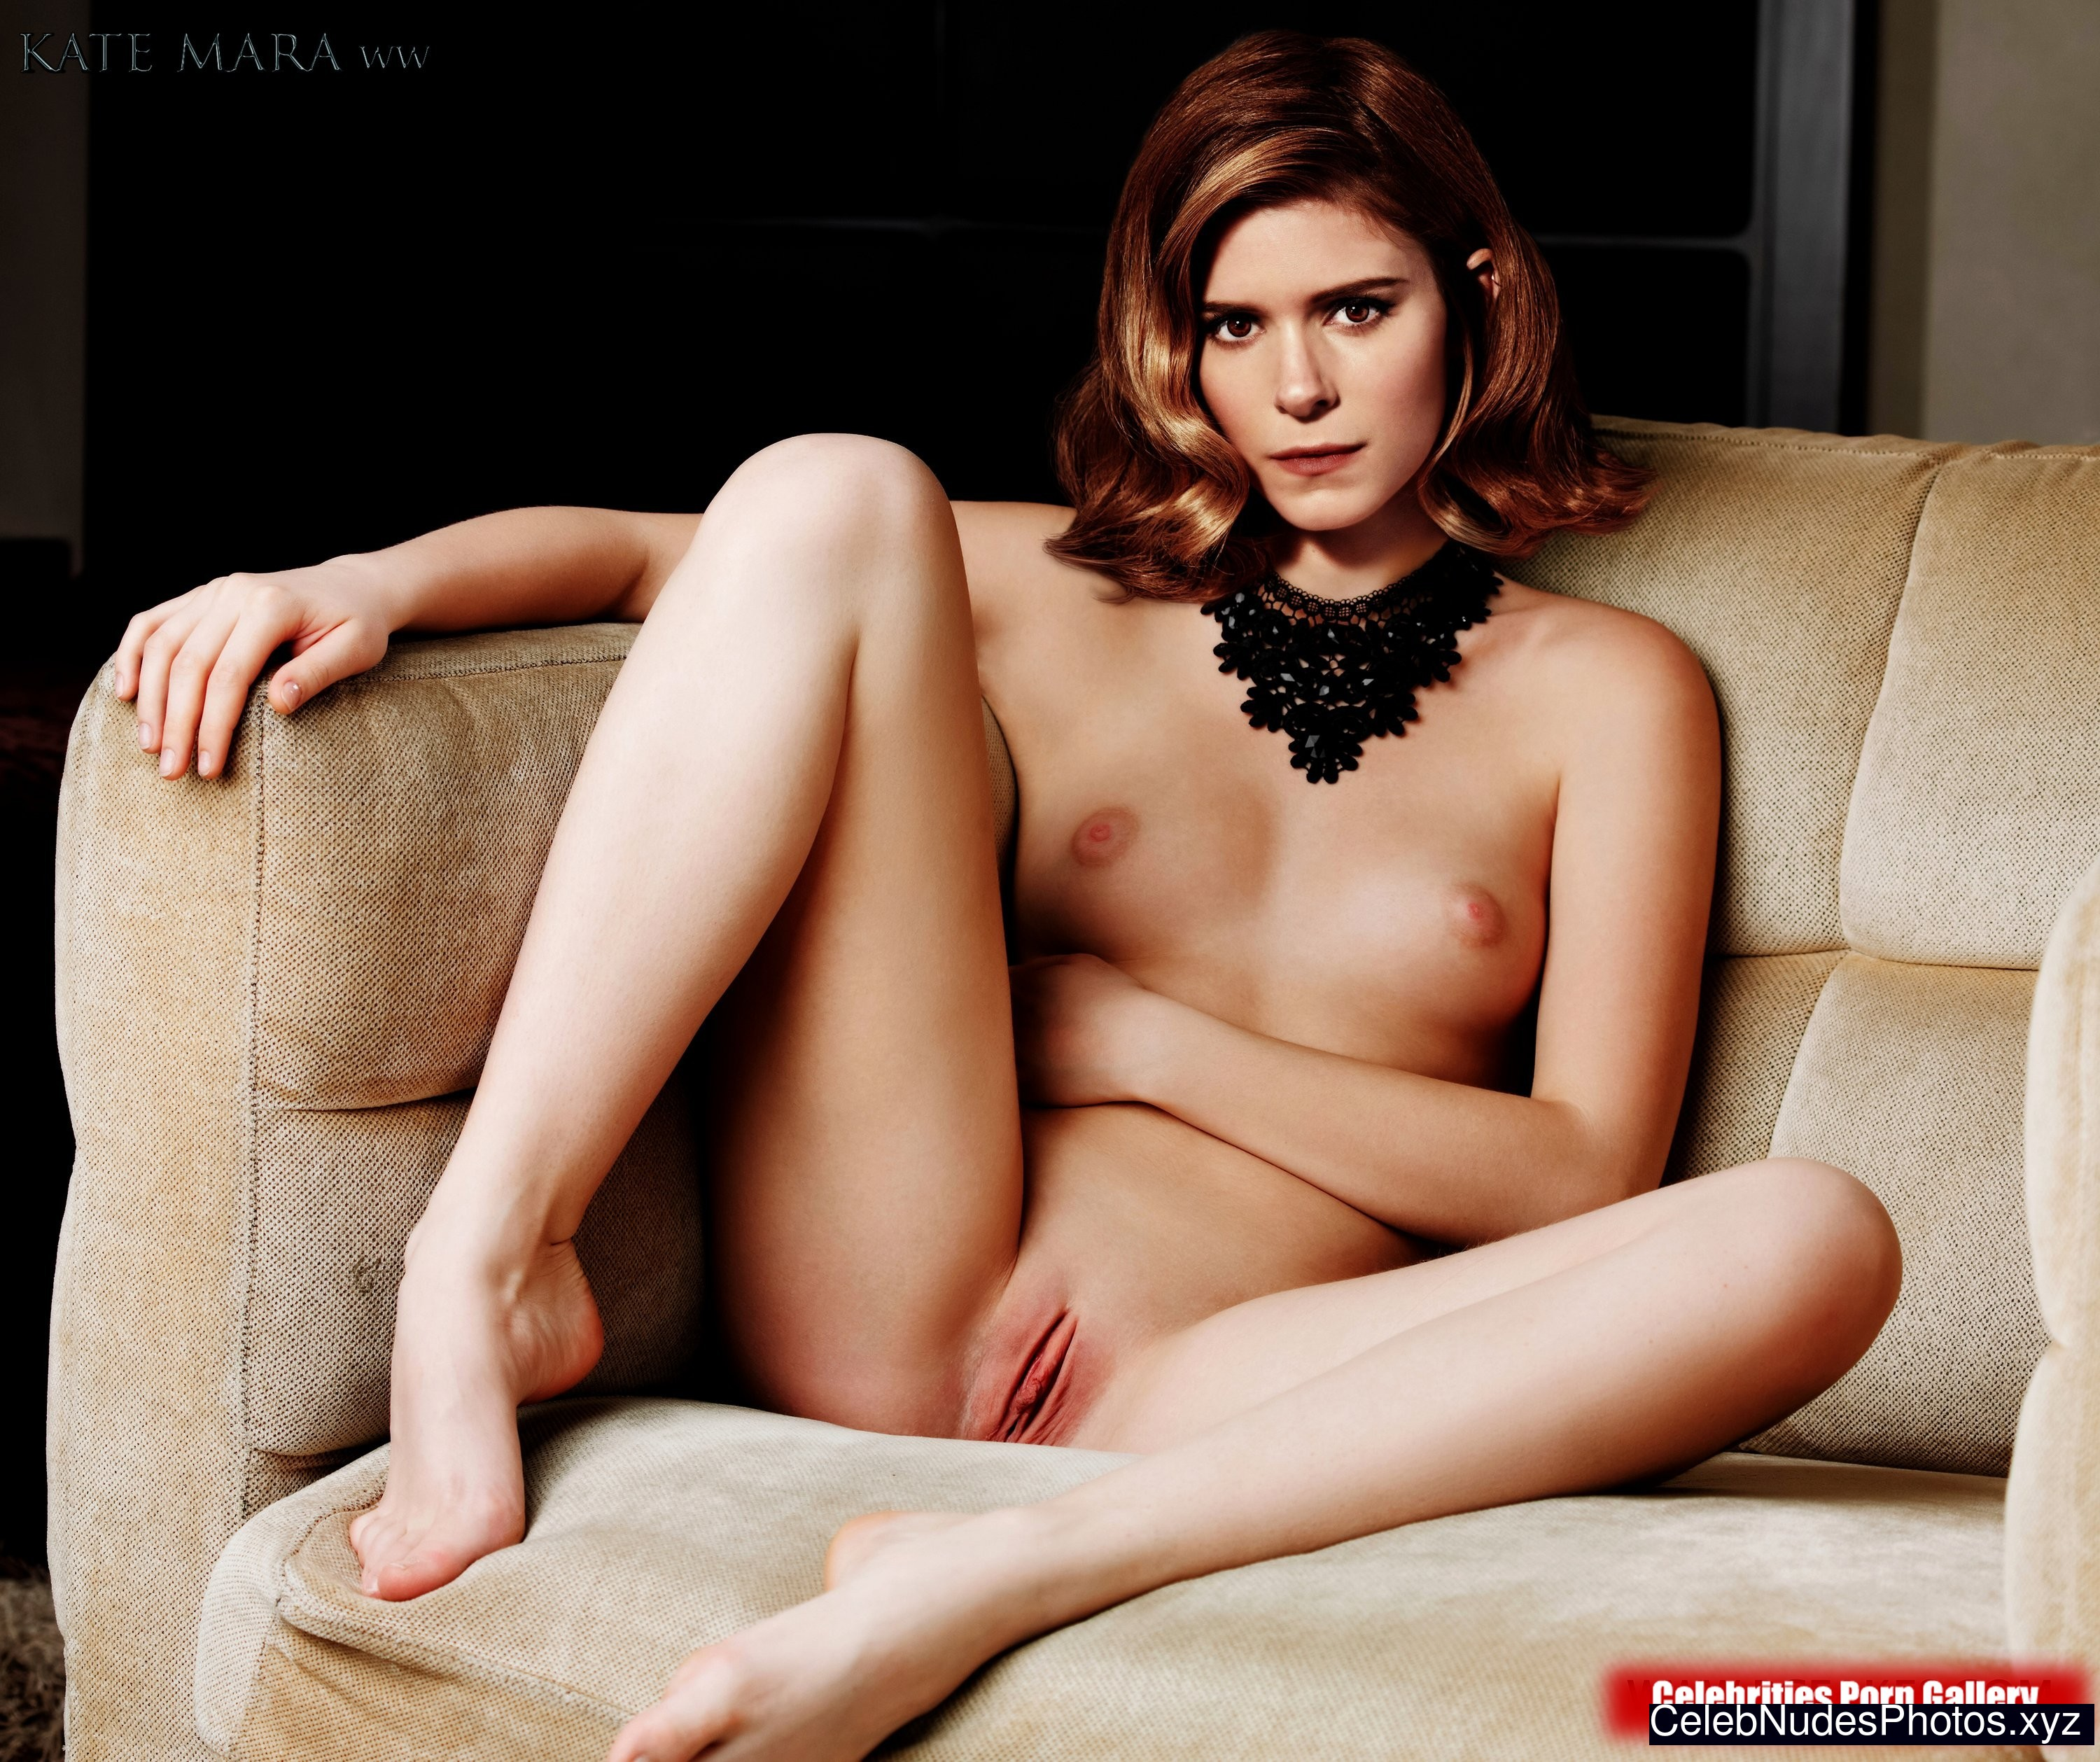 Kate mara fake nude